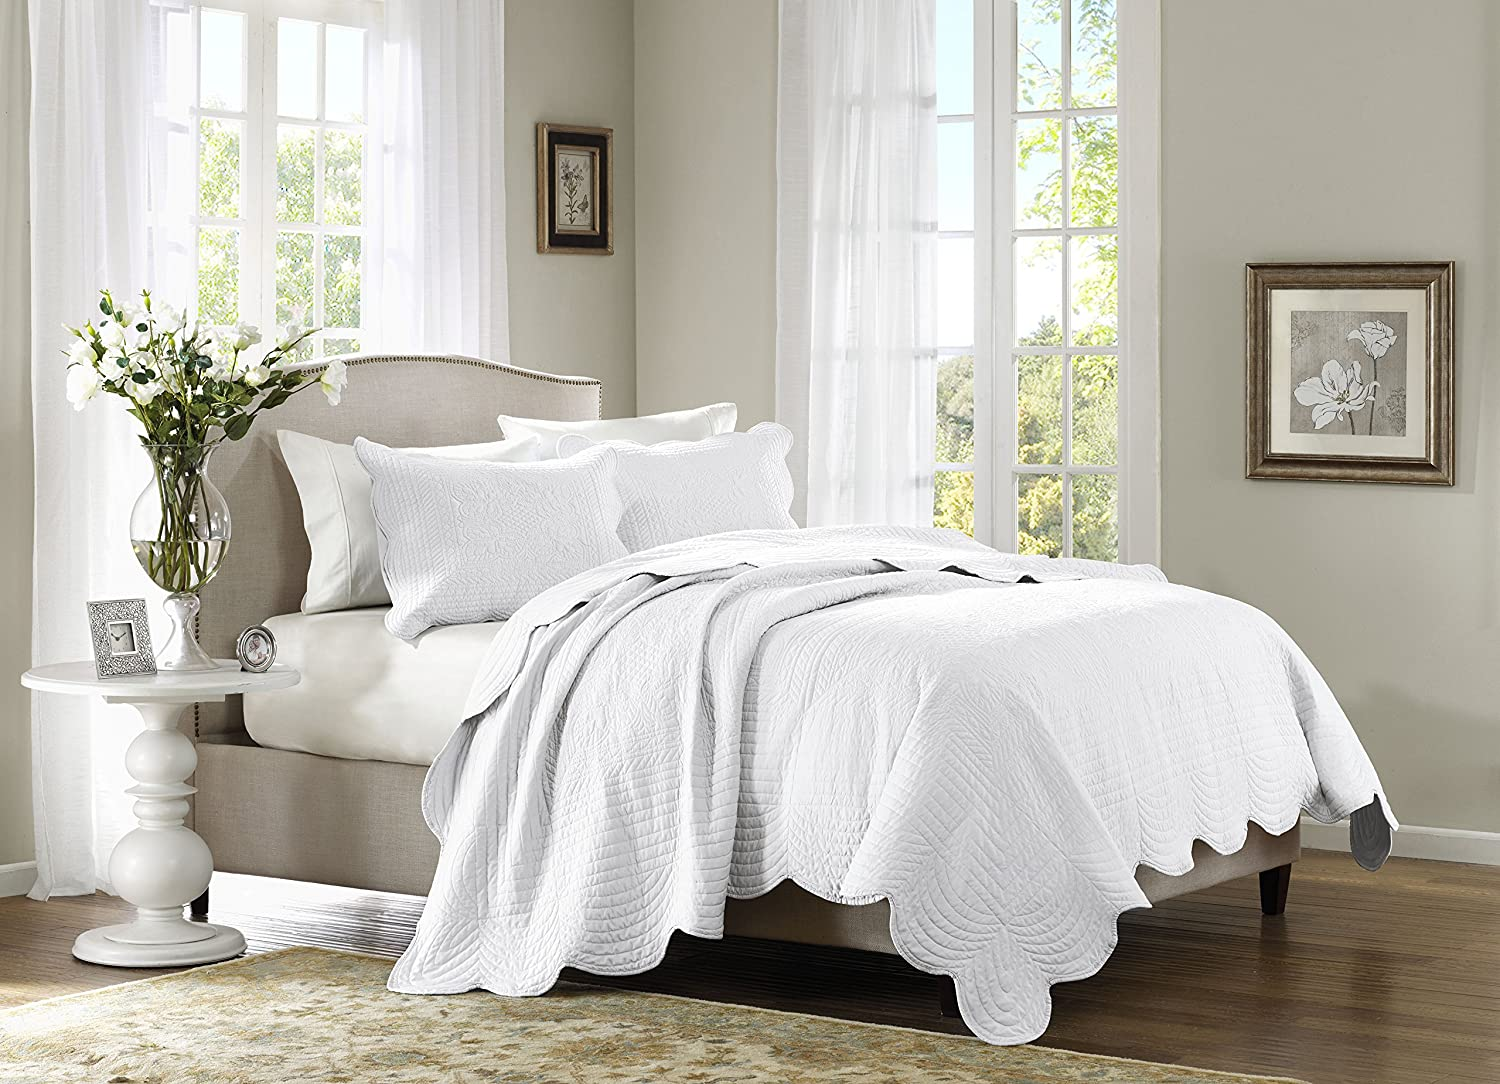 Madison Park Tuscany 3 Piece Coverlet Set, Full/Queen, White MP13-1037